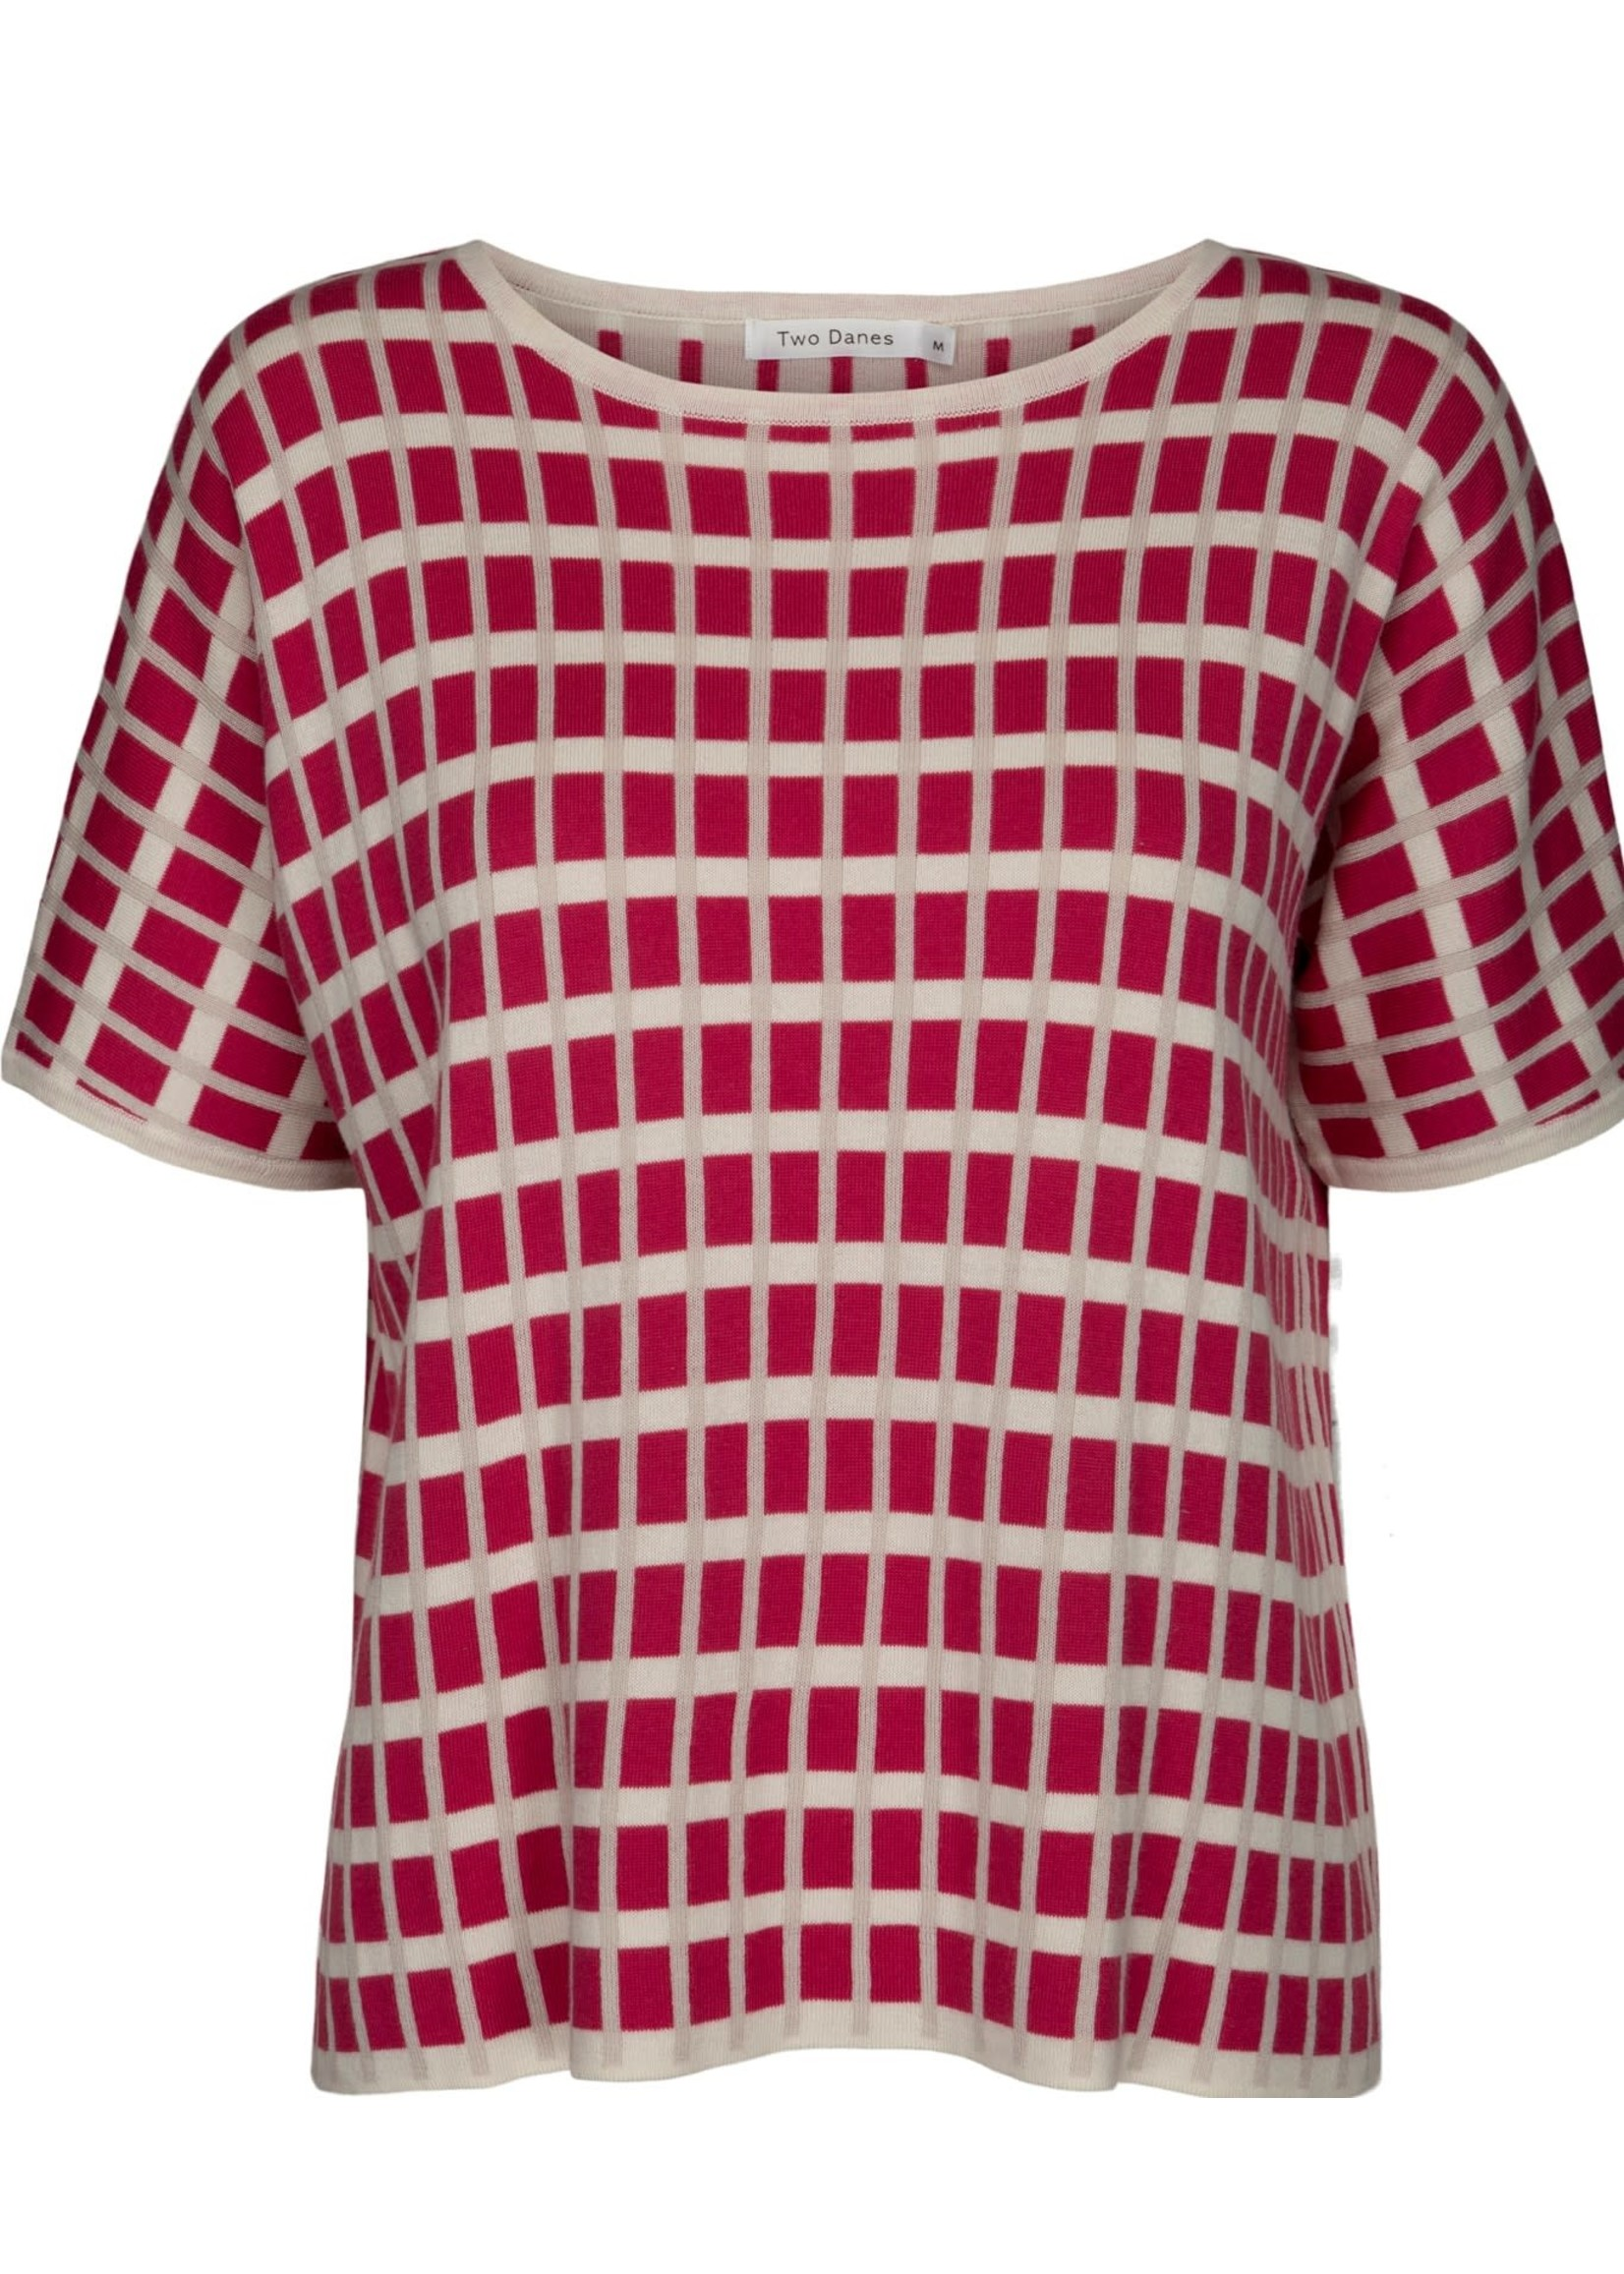 TWO DANES 34222 324 Nynne Knit Top